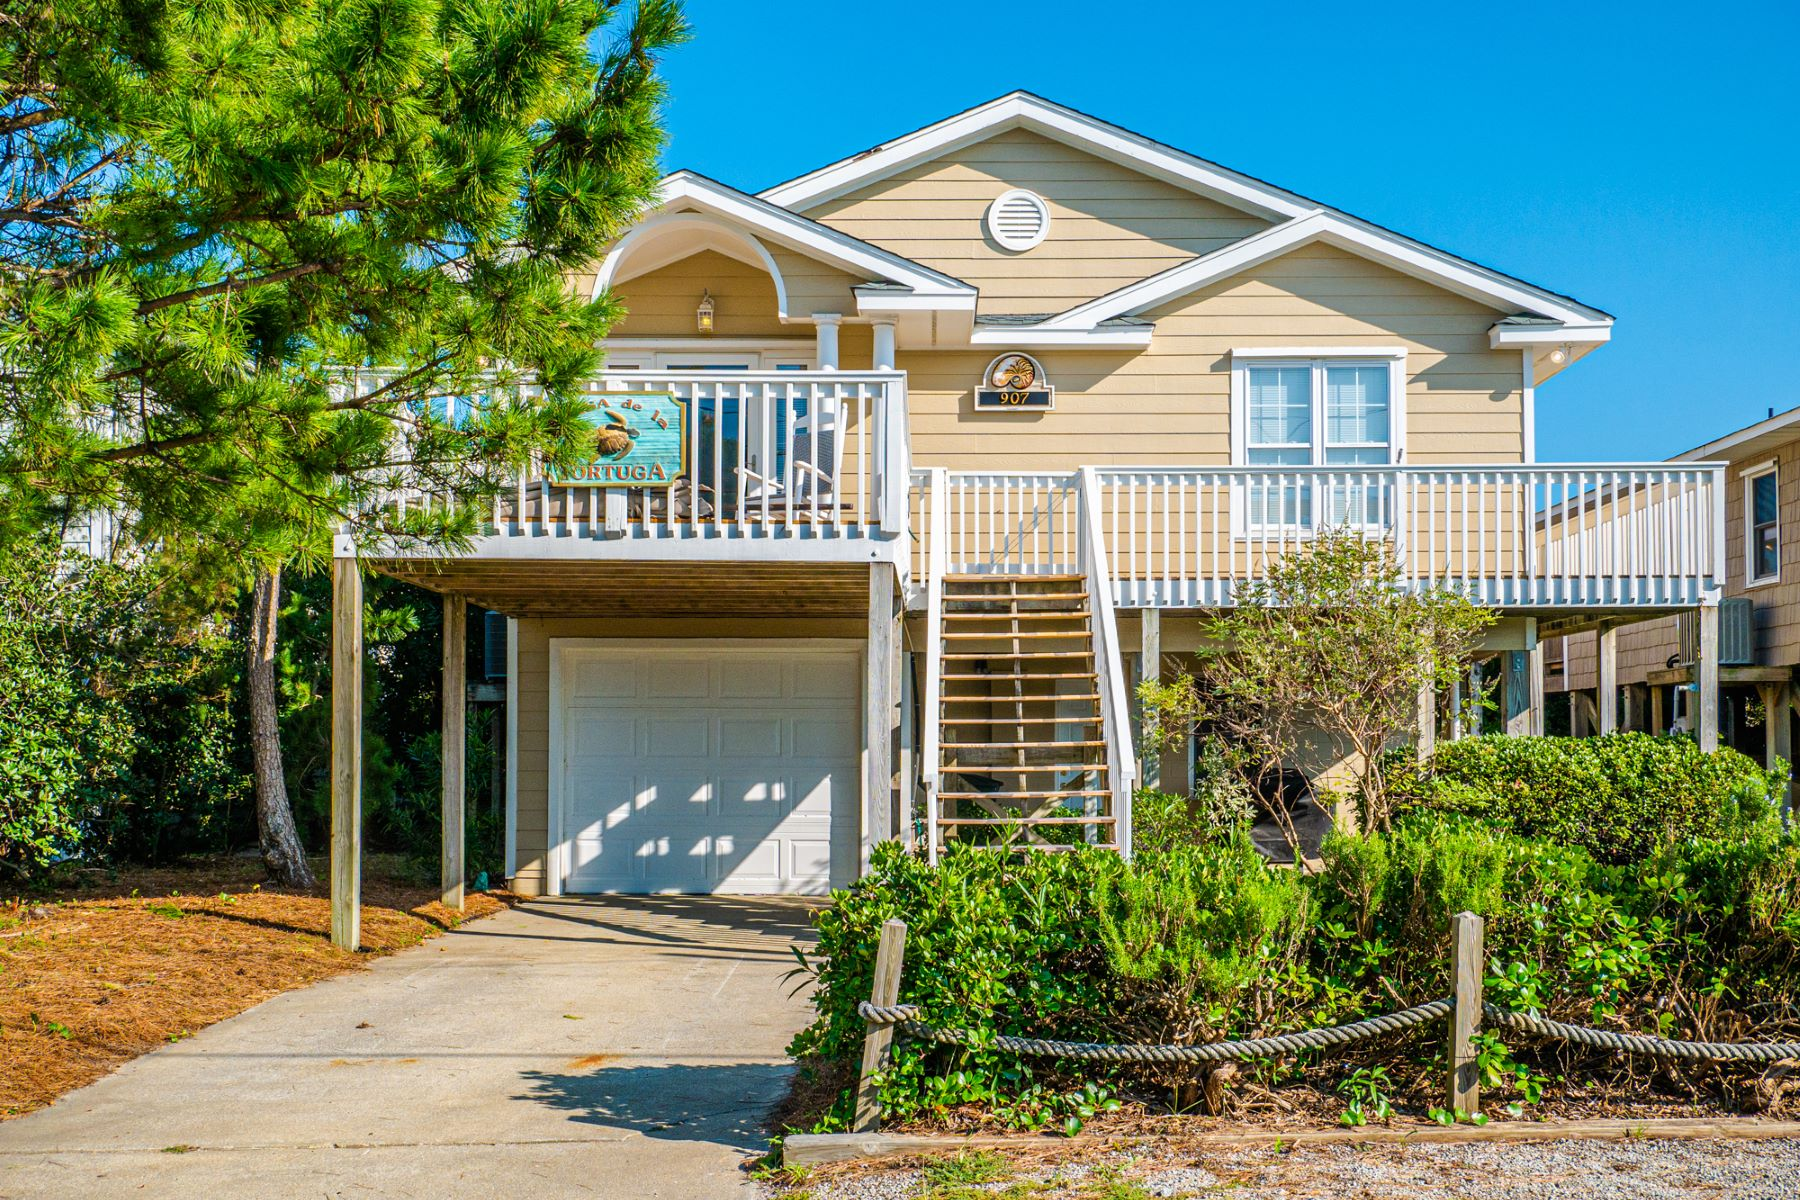 Single Family Homes for Sale at Ocean Front Cottage 907 Ocean Blvd Topsail Beach, North Carolina 28445 United States